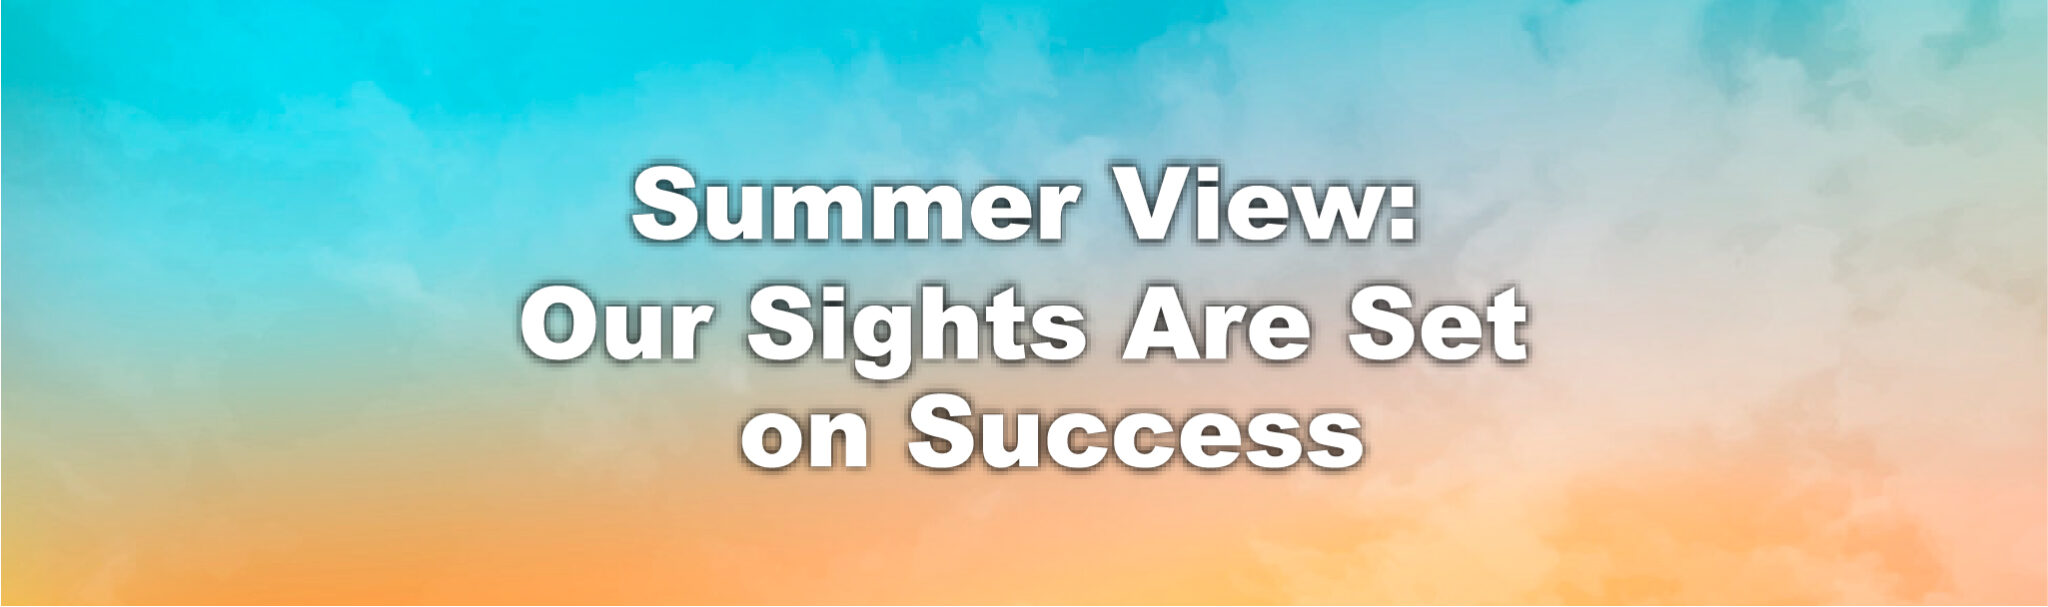 Summer View: Our Sights Are Set on Success